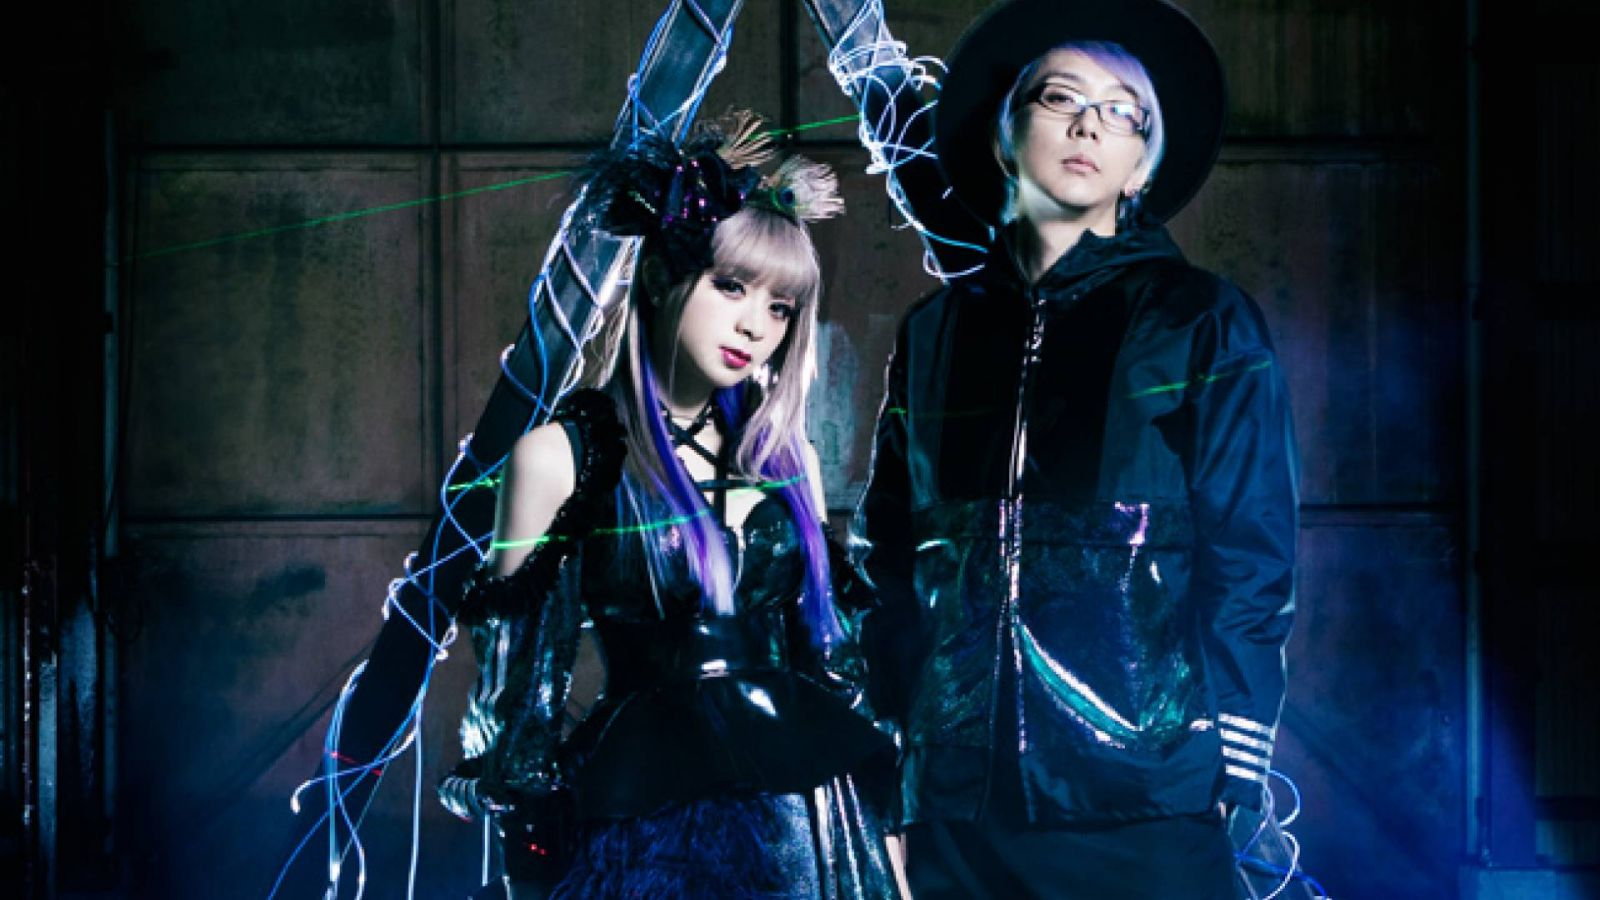 GARNiDELiA to Perform at A-Kon 2018 © SACRA MUSIC. All rights reserved.